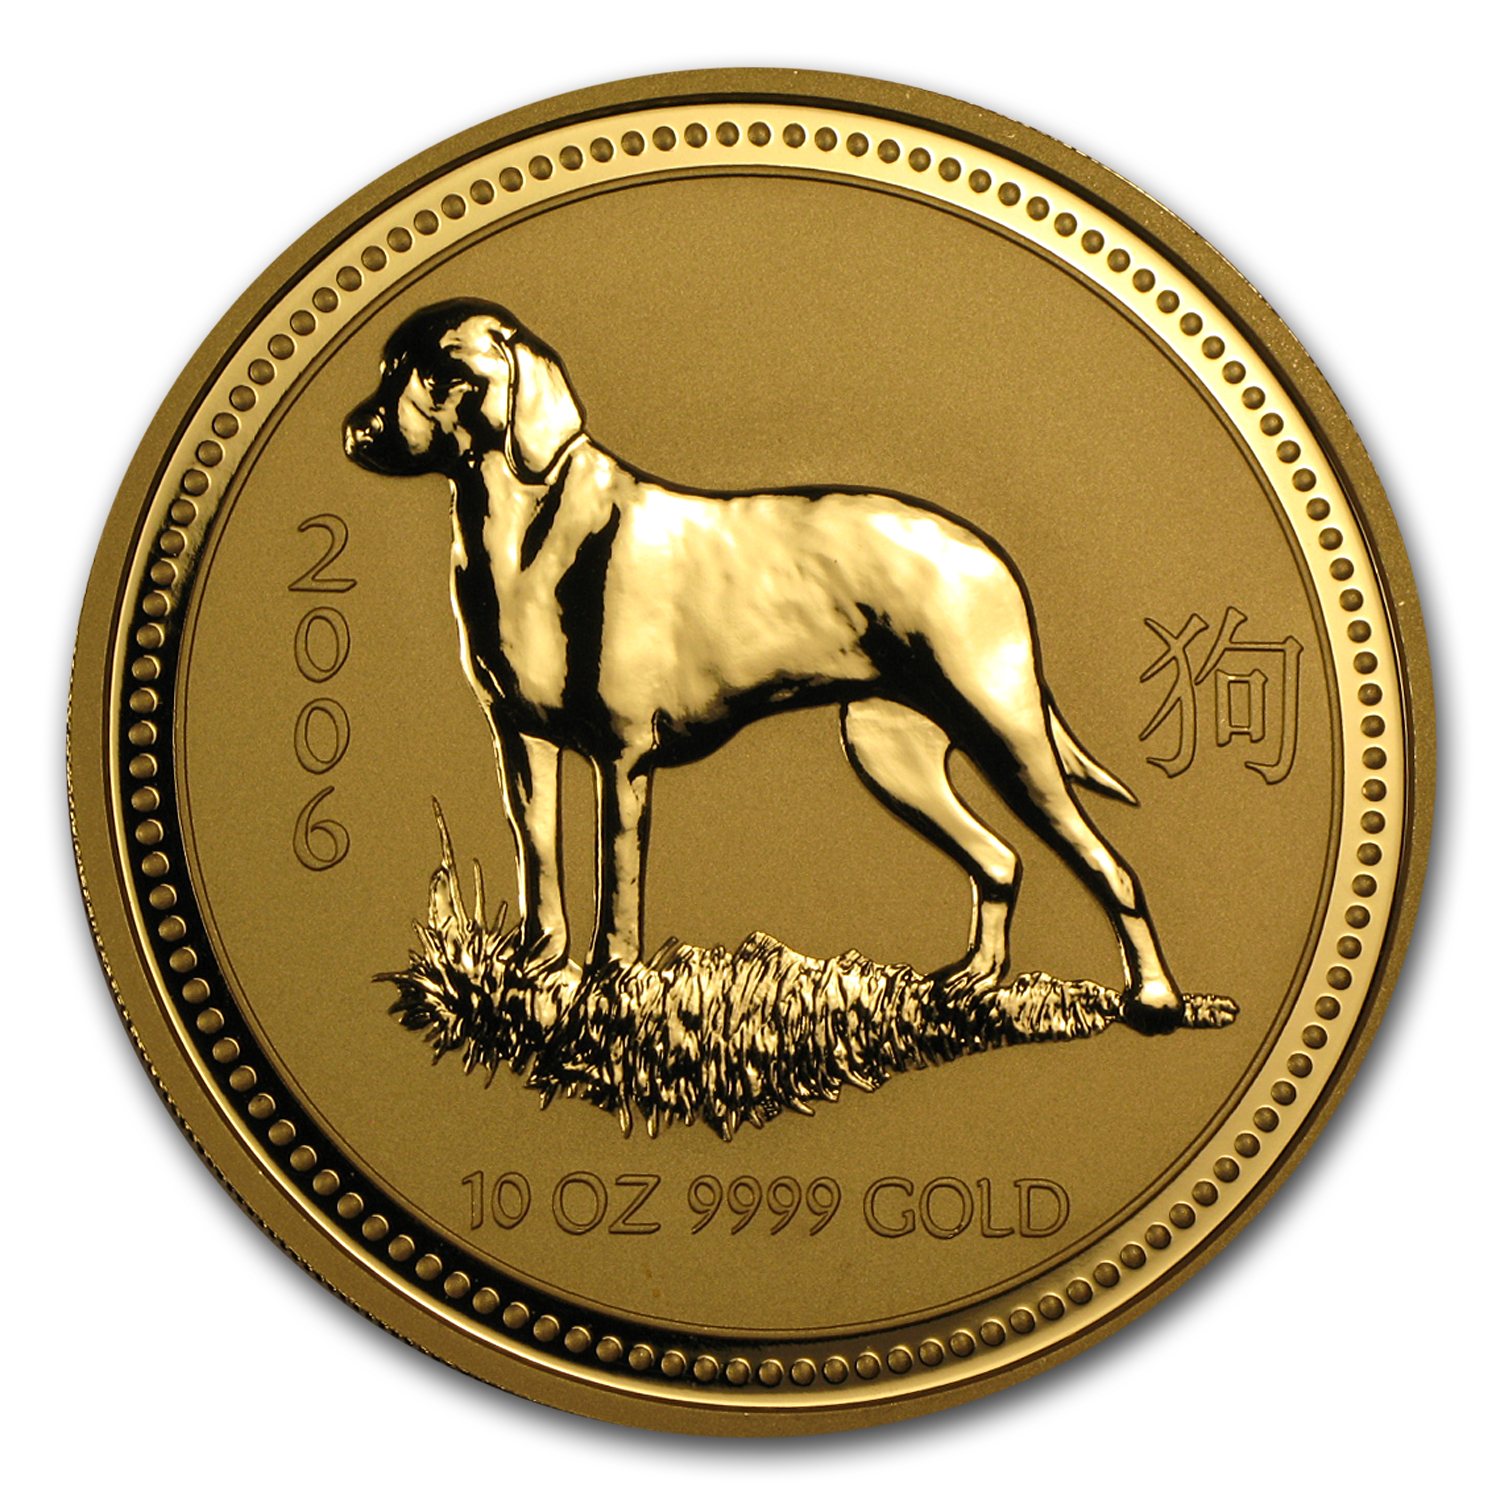 2006 10 oz Gold Year of the Dog Lunar Coin (Series I)